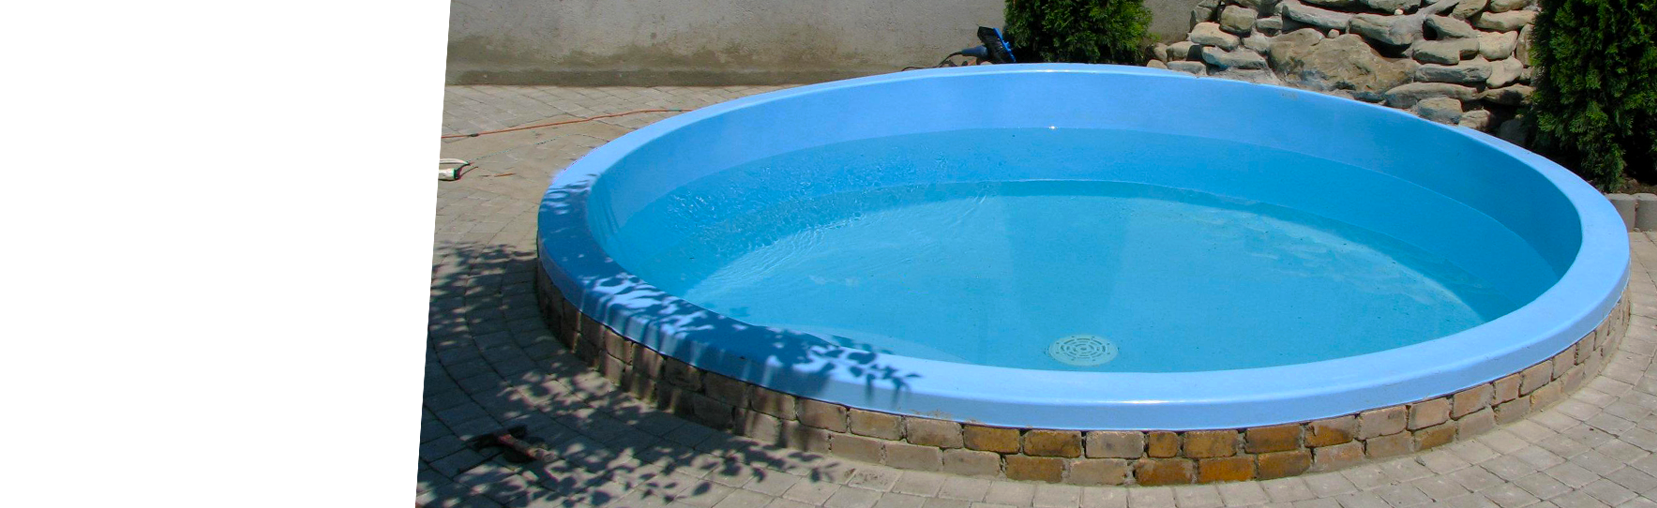 piscina-rotunda